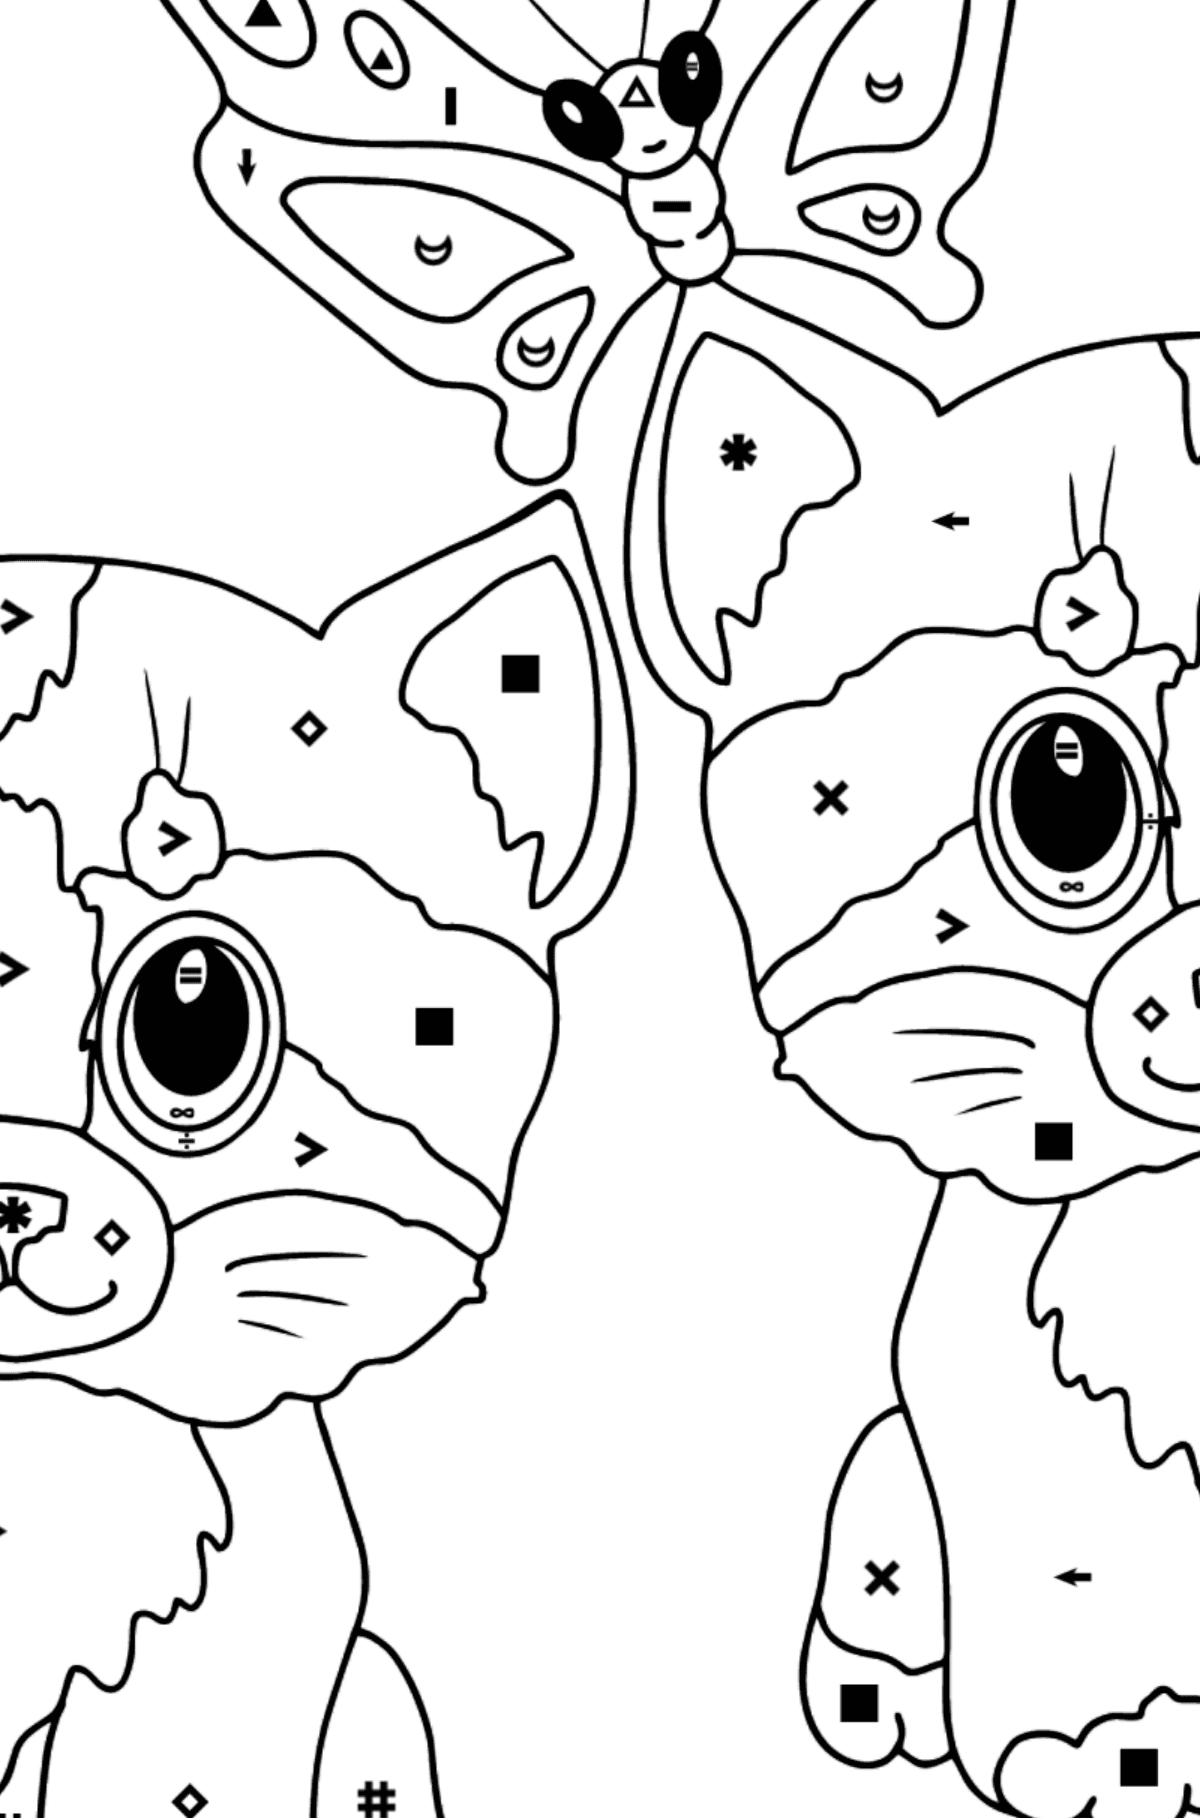 Coloring Page - Kittens are Playing Happily with a Butterfly  - Coloring by Symbols for Kids